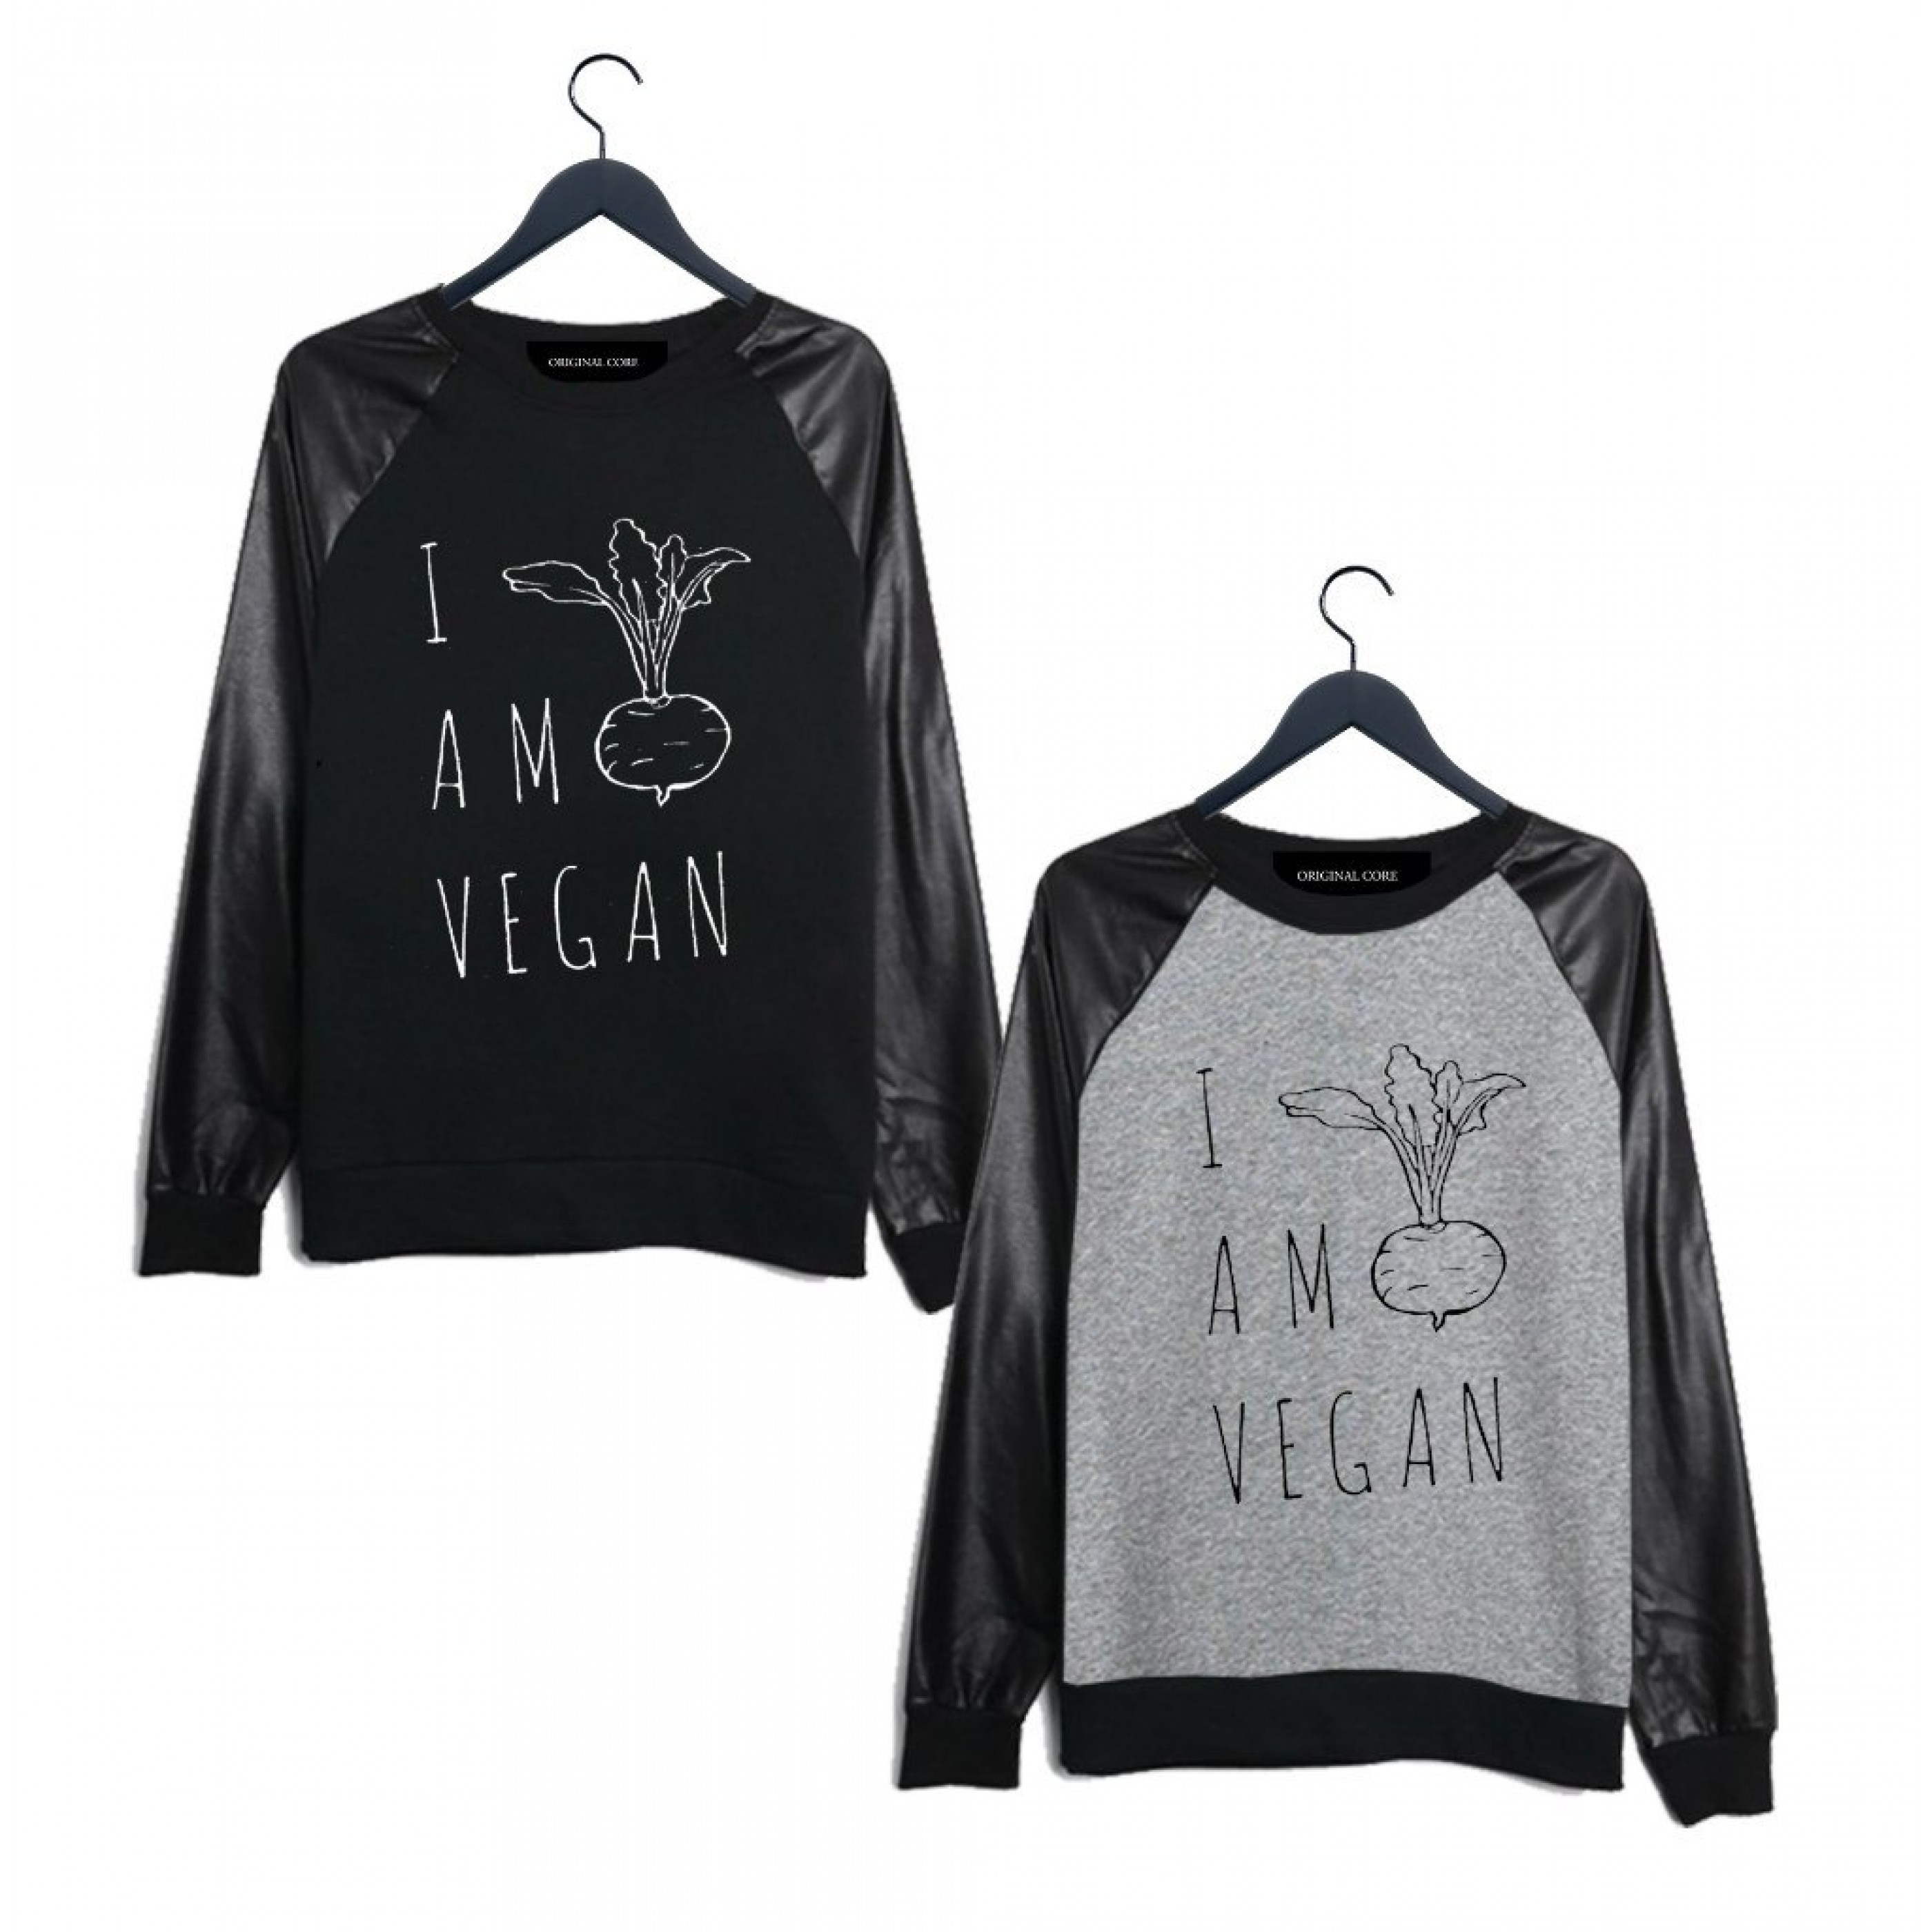 ORIGINAL CORE Vegan Leathersleeved Sweatshirt